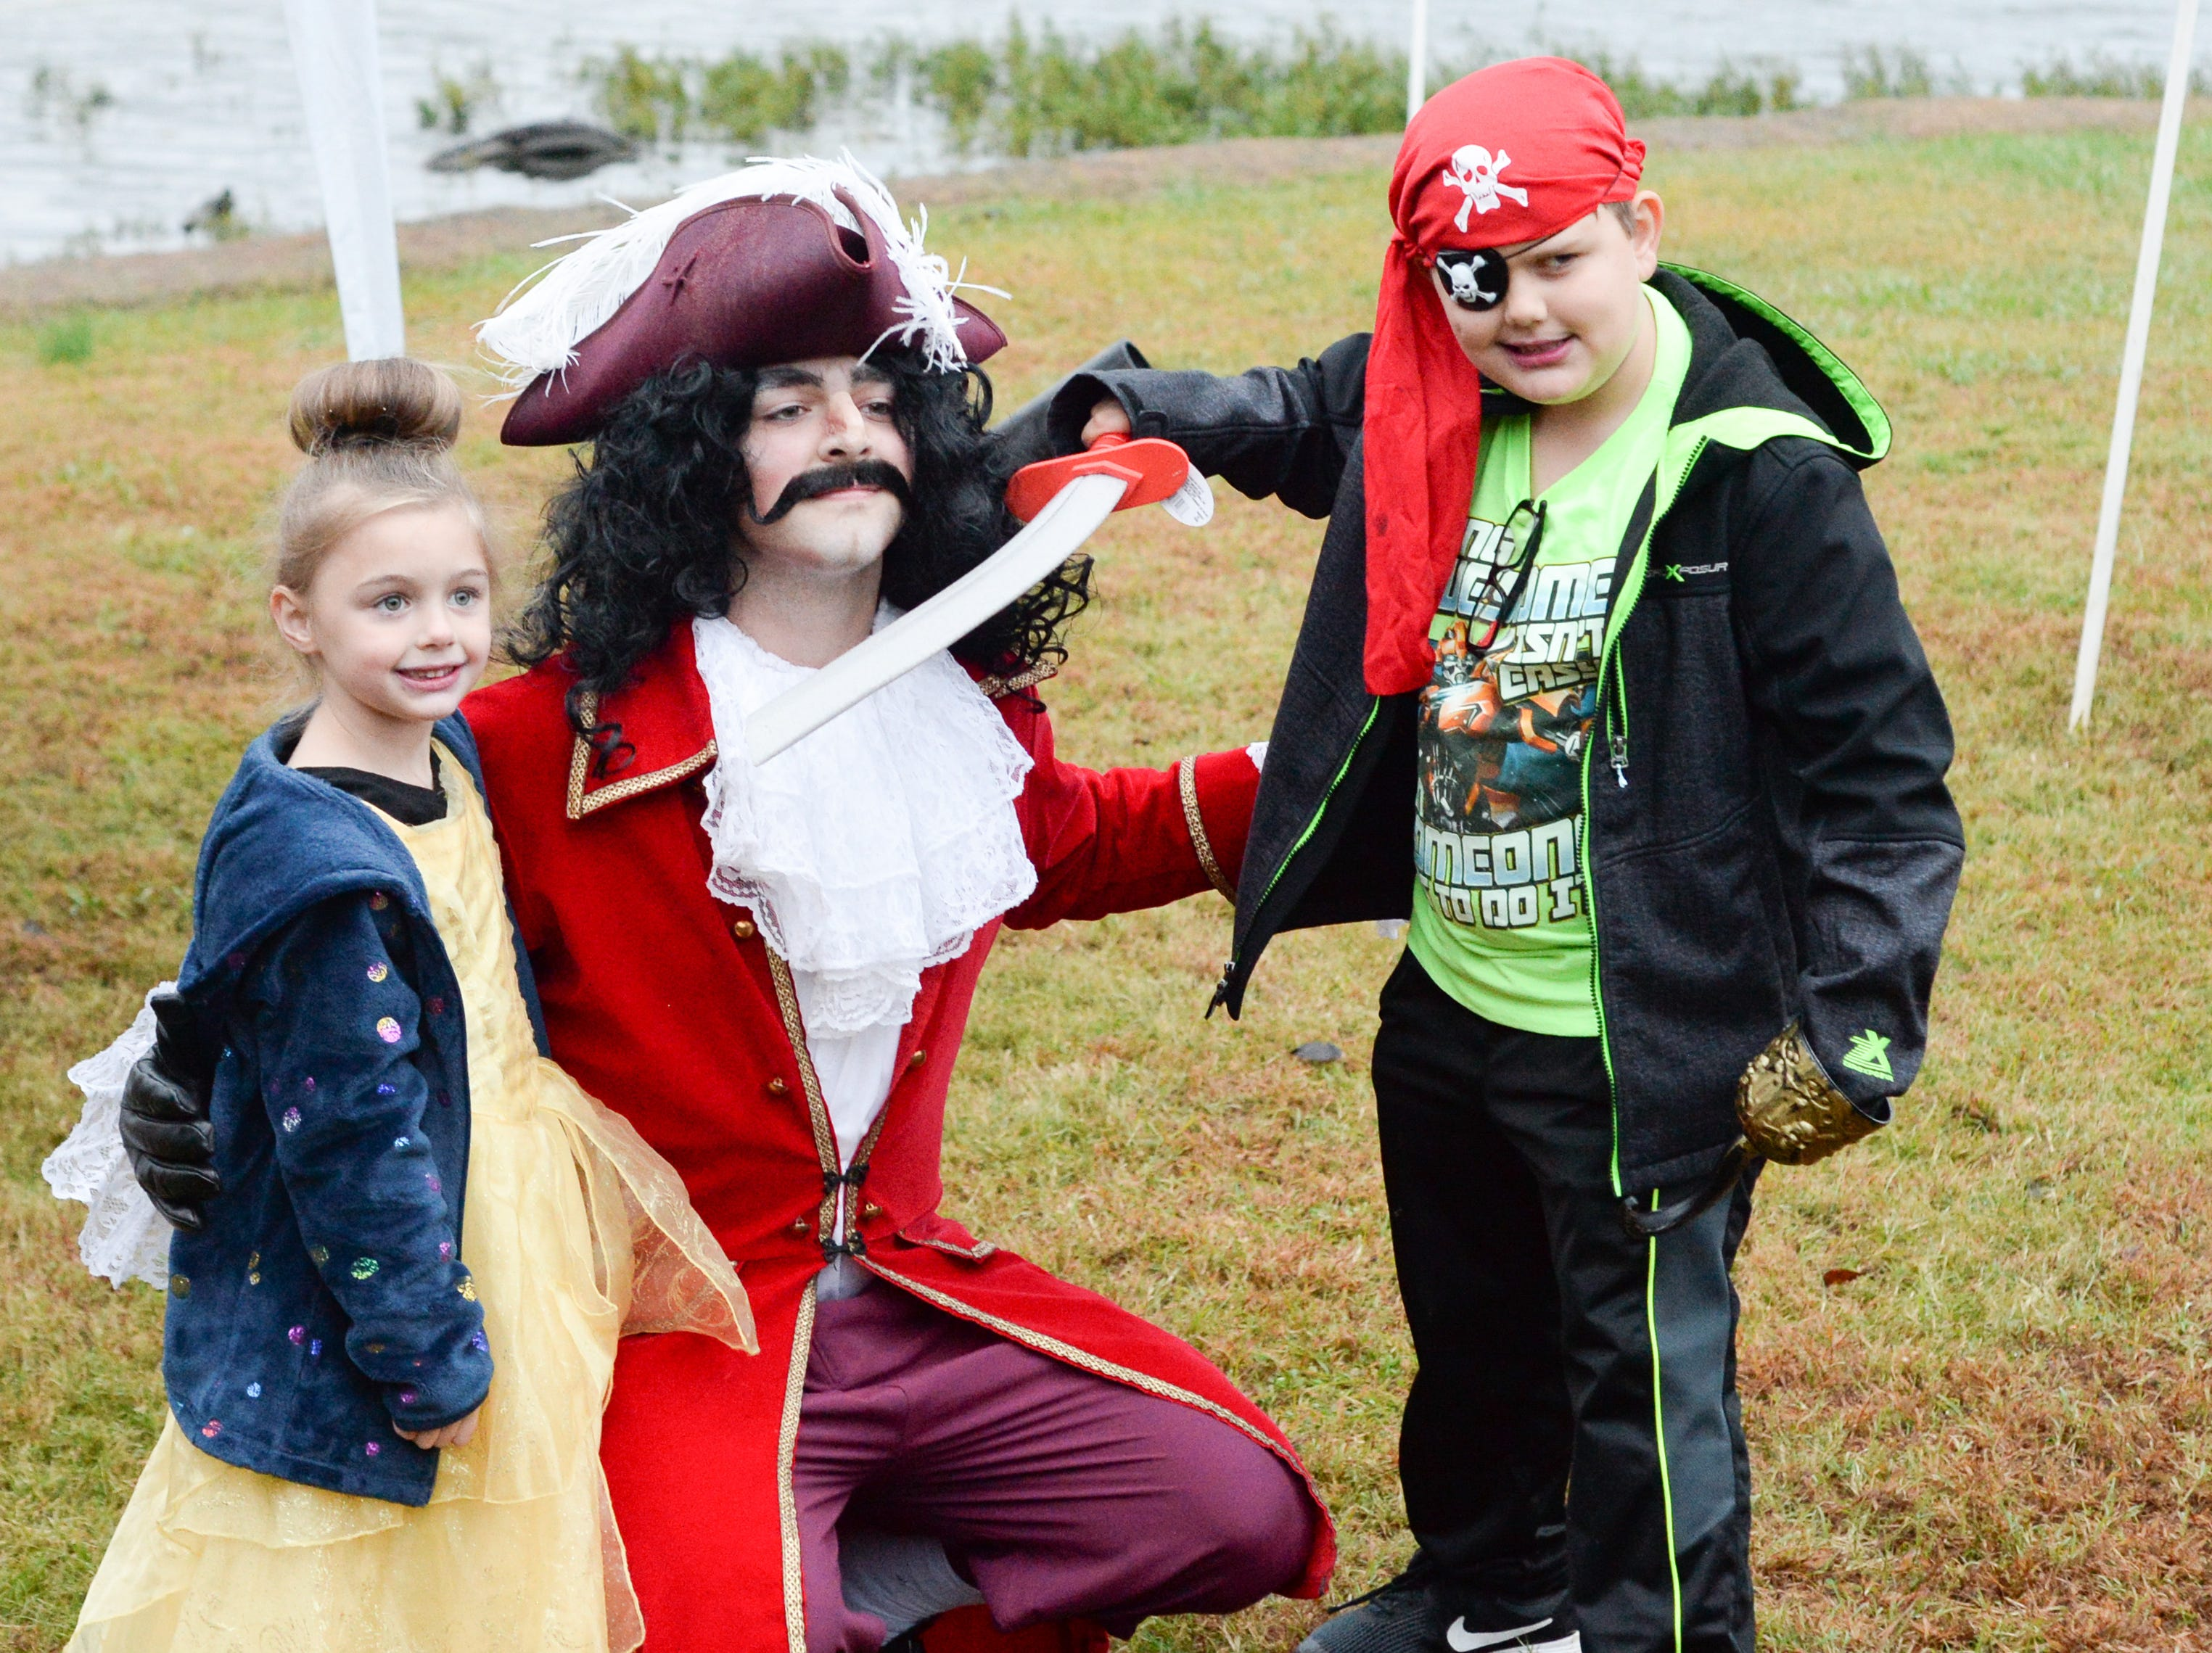 Dakota and Gavin Weyman enjoy interacting with characters during the Castle of Villains trick or treating event at Historic Rock Castle in Hendersonville on Friday, Oct. 26.